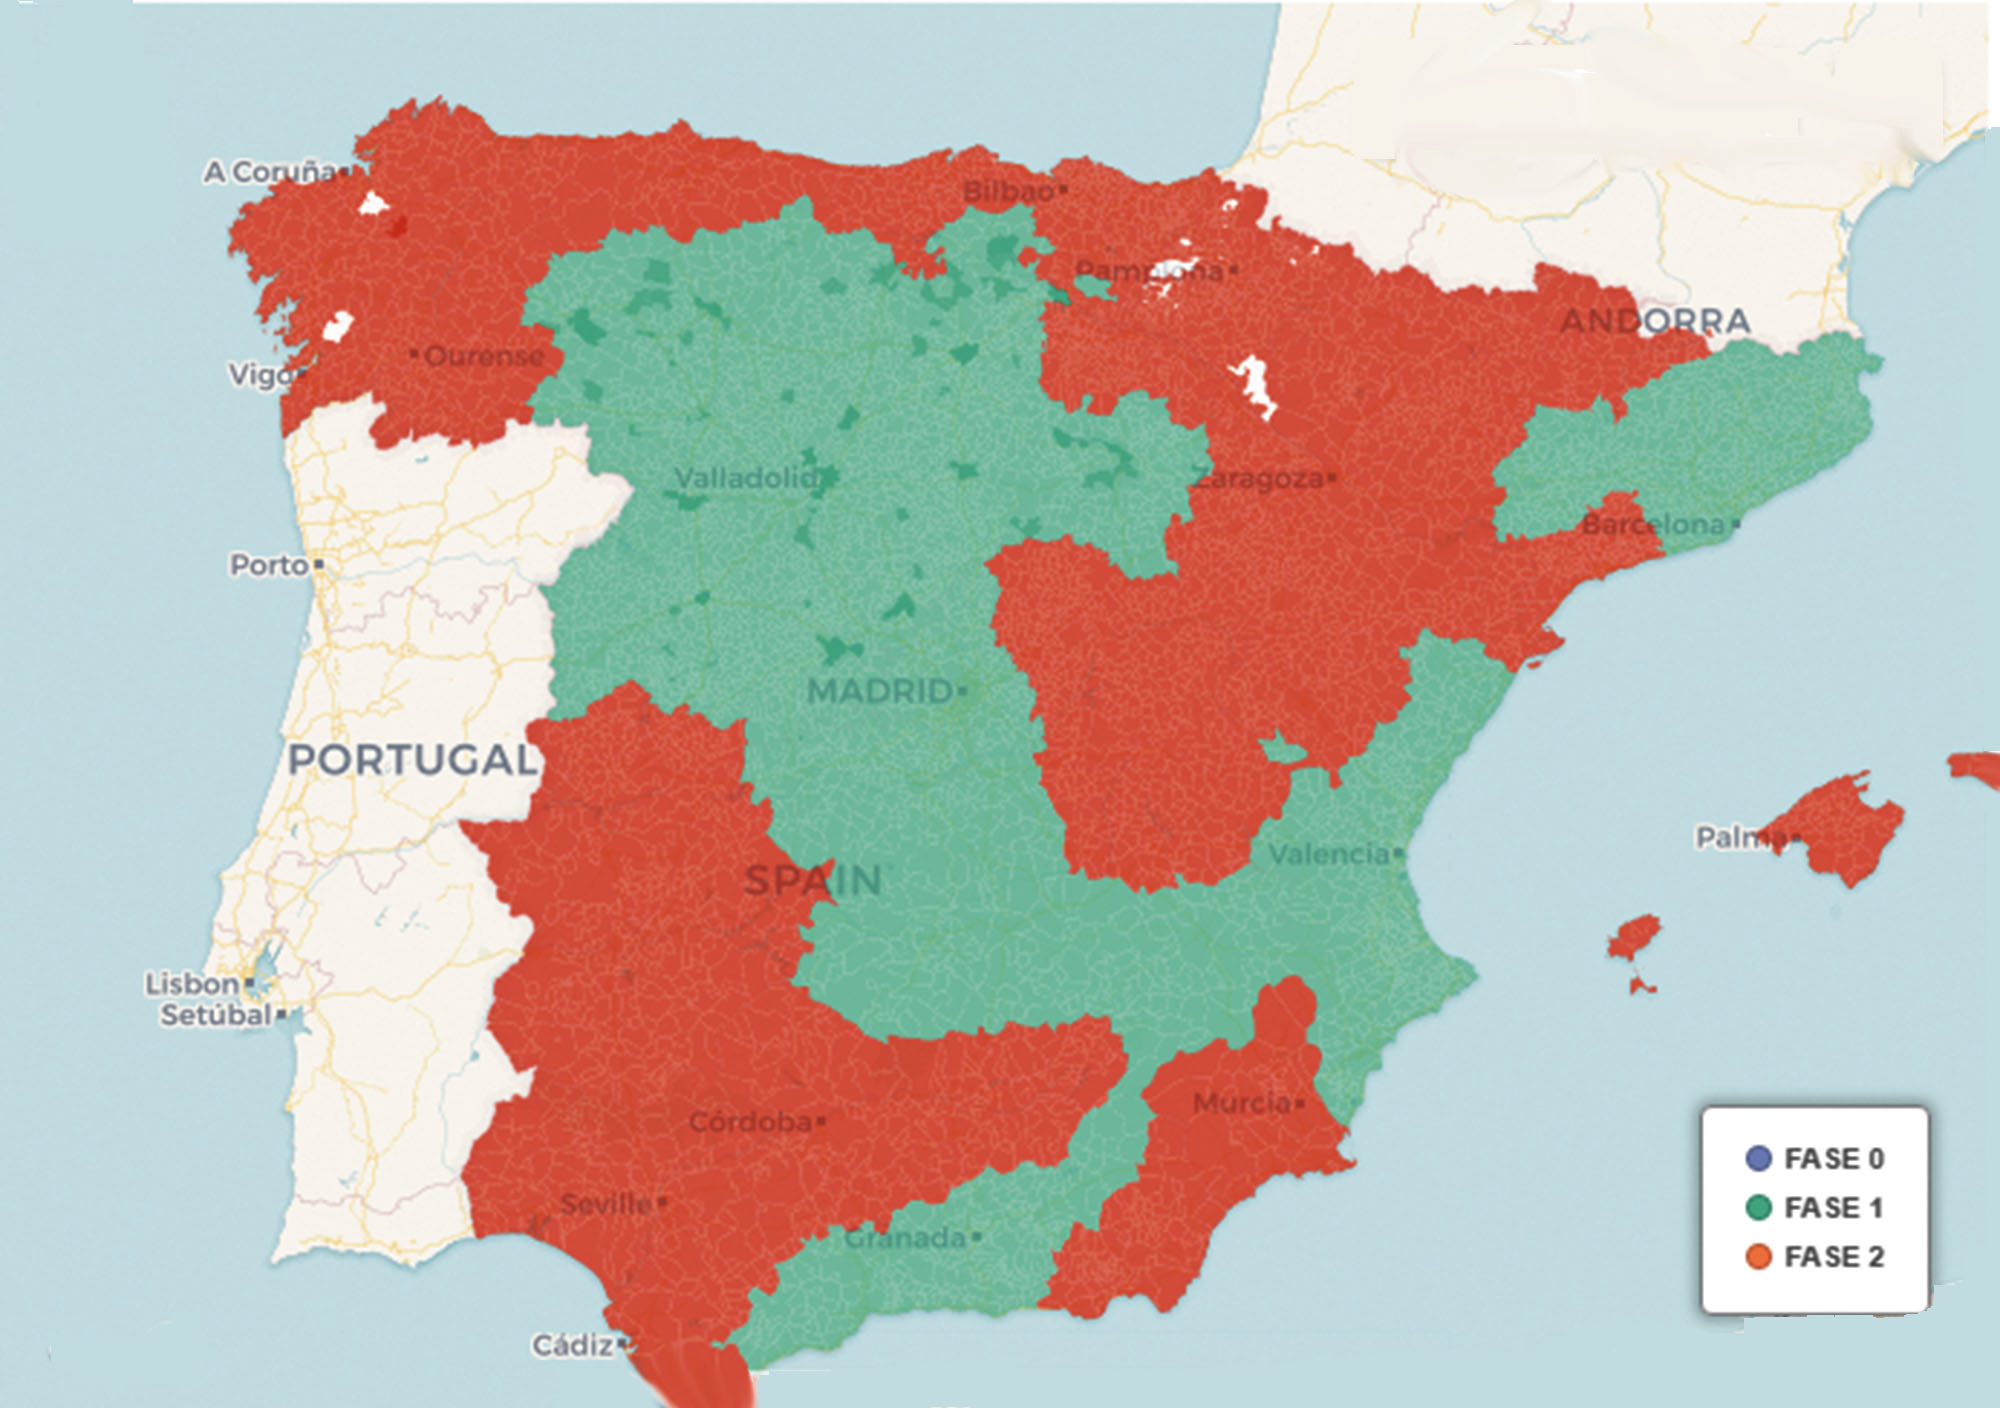 47% of Spain goes to phase 2 on Monday while Madrid, Barcelona and Castilla y León go to phase 1